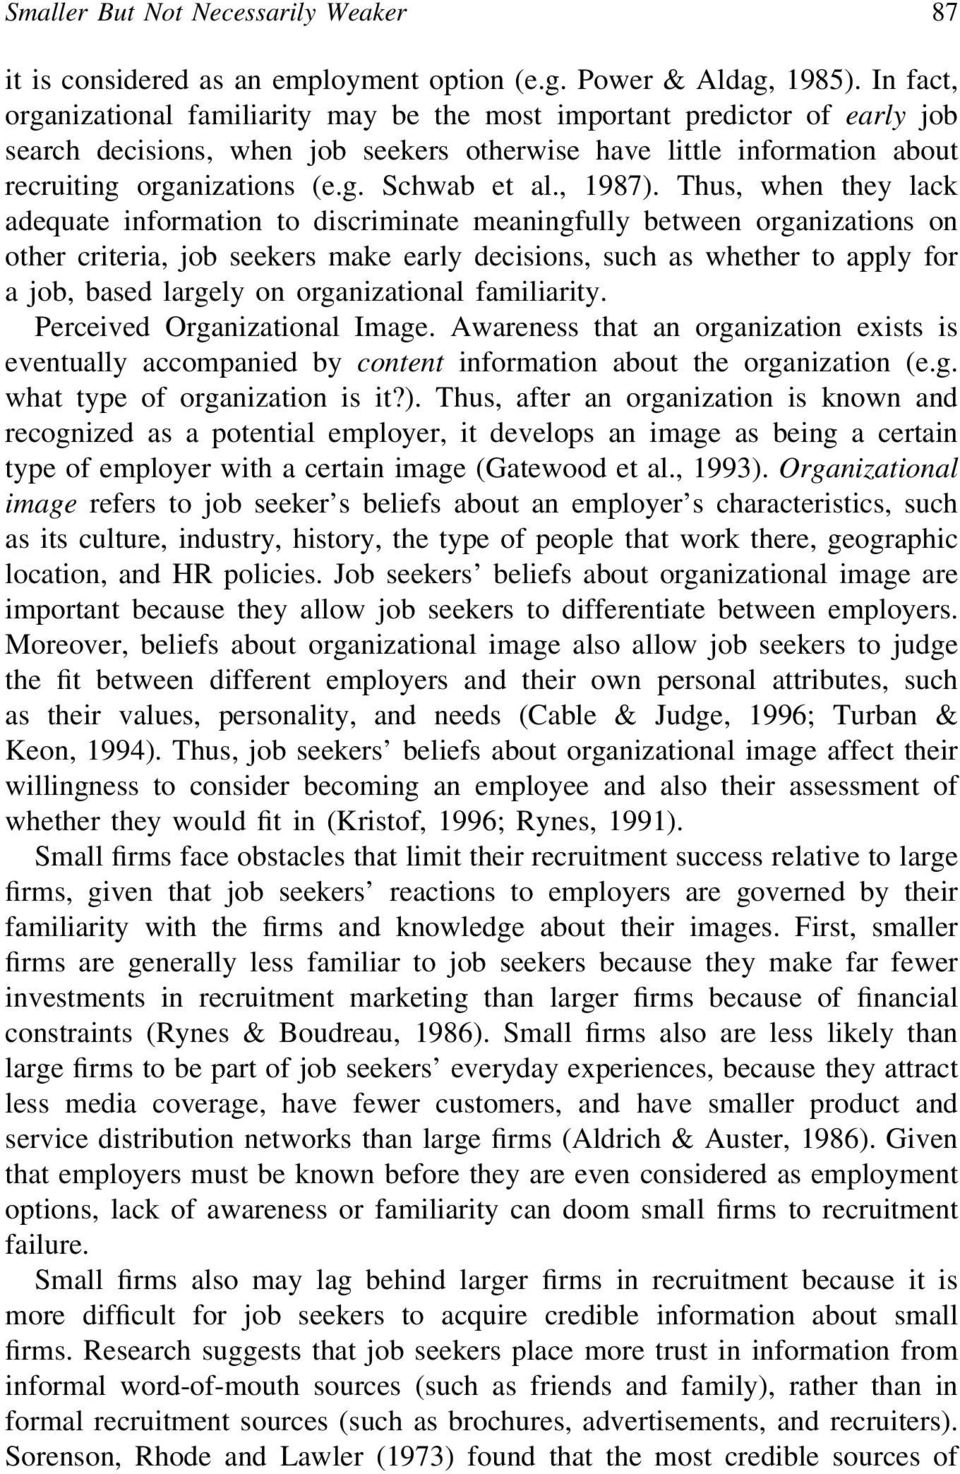 , ). Thus, when they lack adequate information to discriminate meaningfully between organizations on other criteria, job seekers make early decisions, such as whether to apply for a job, based